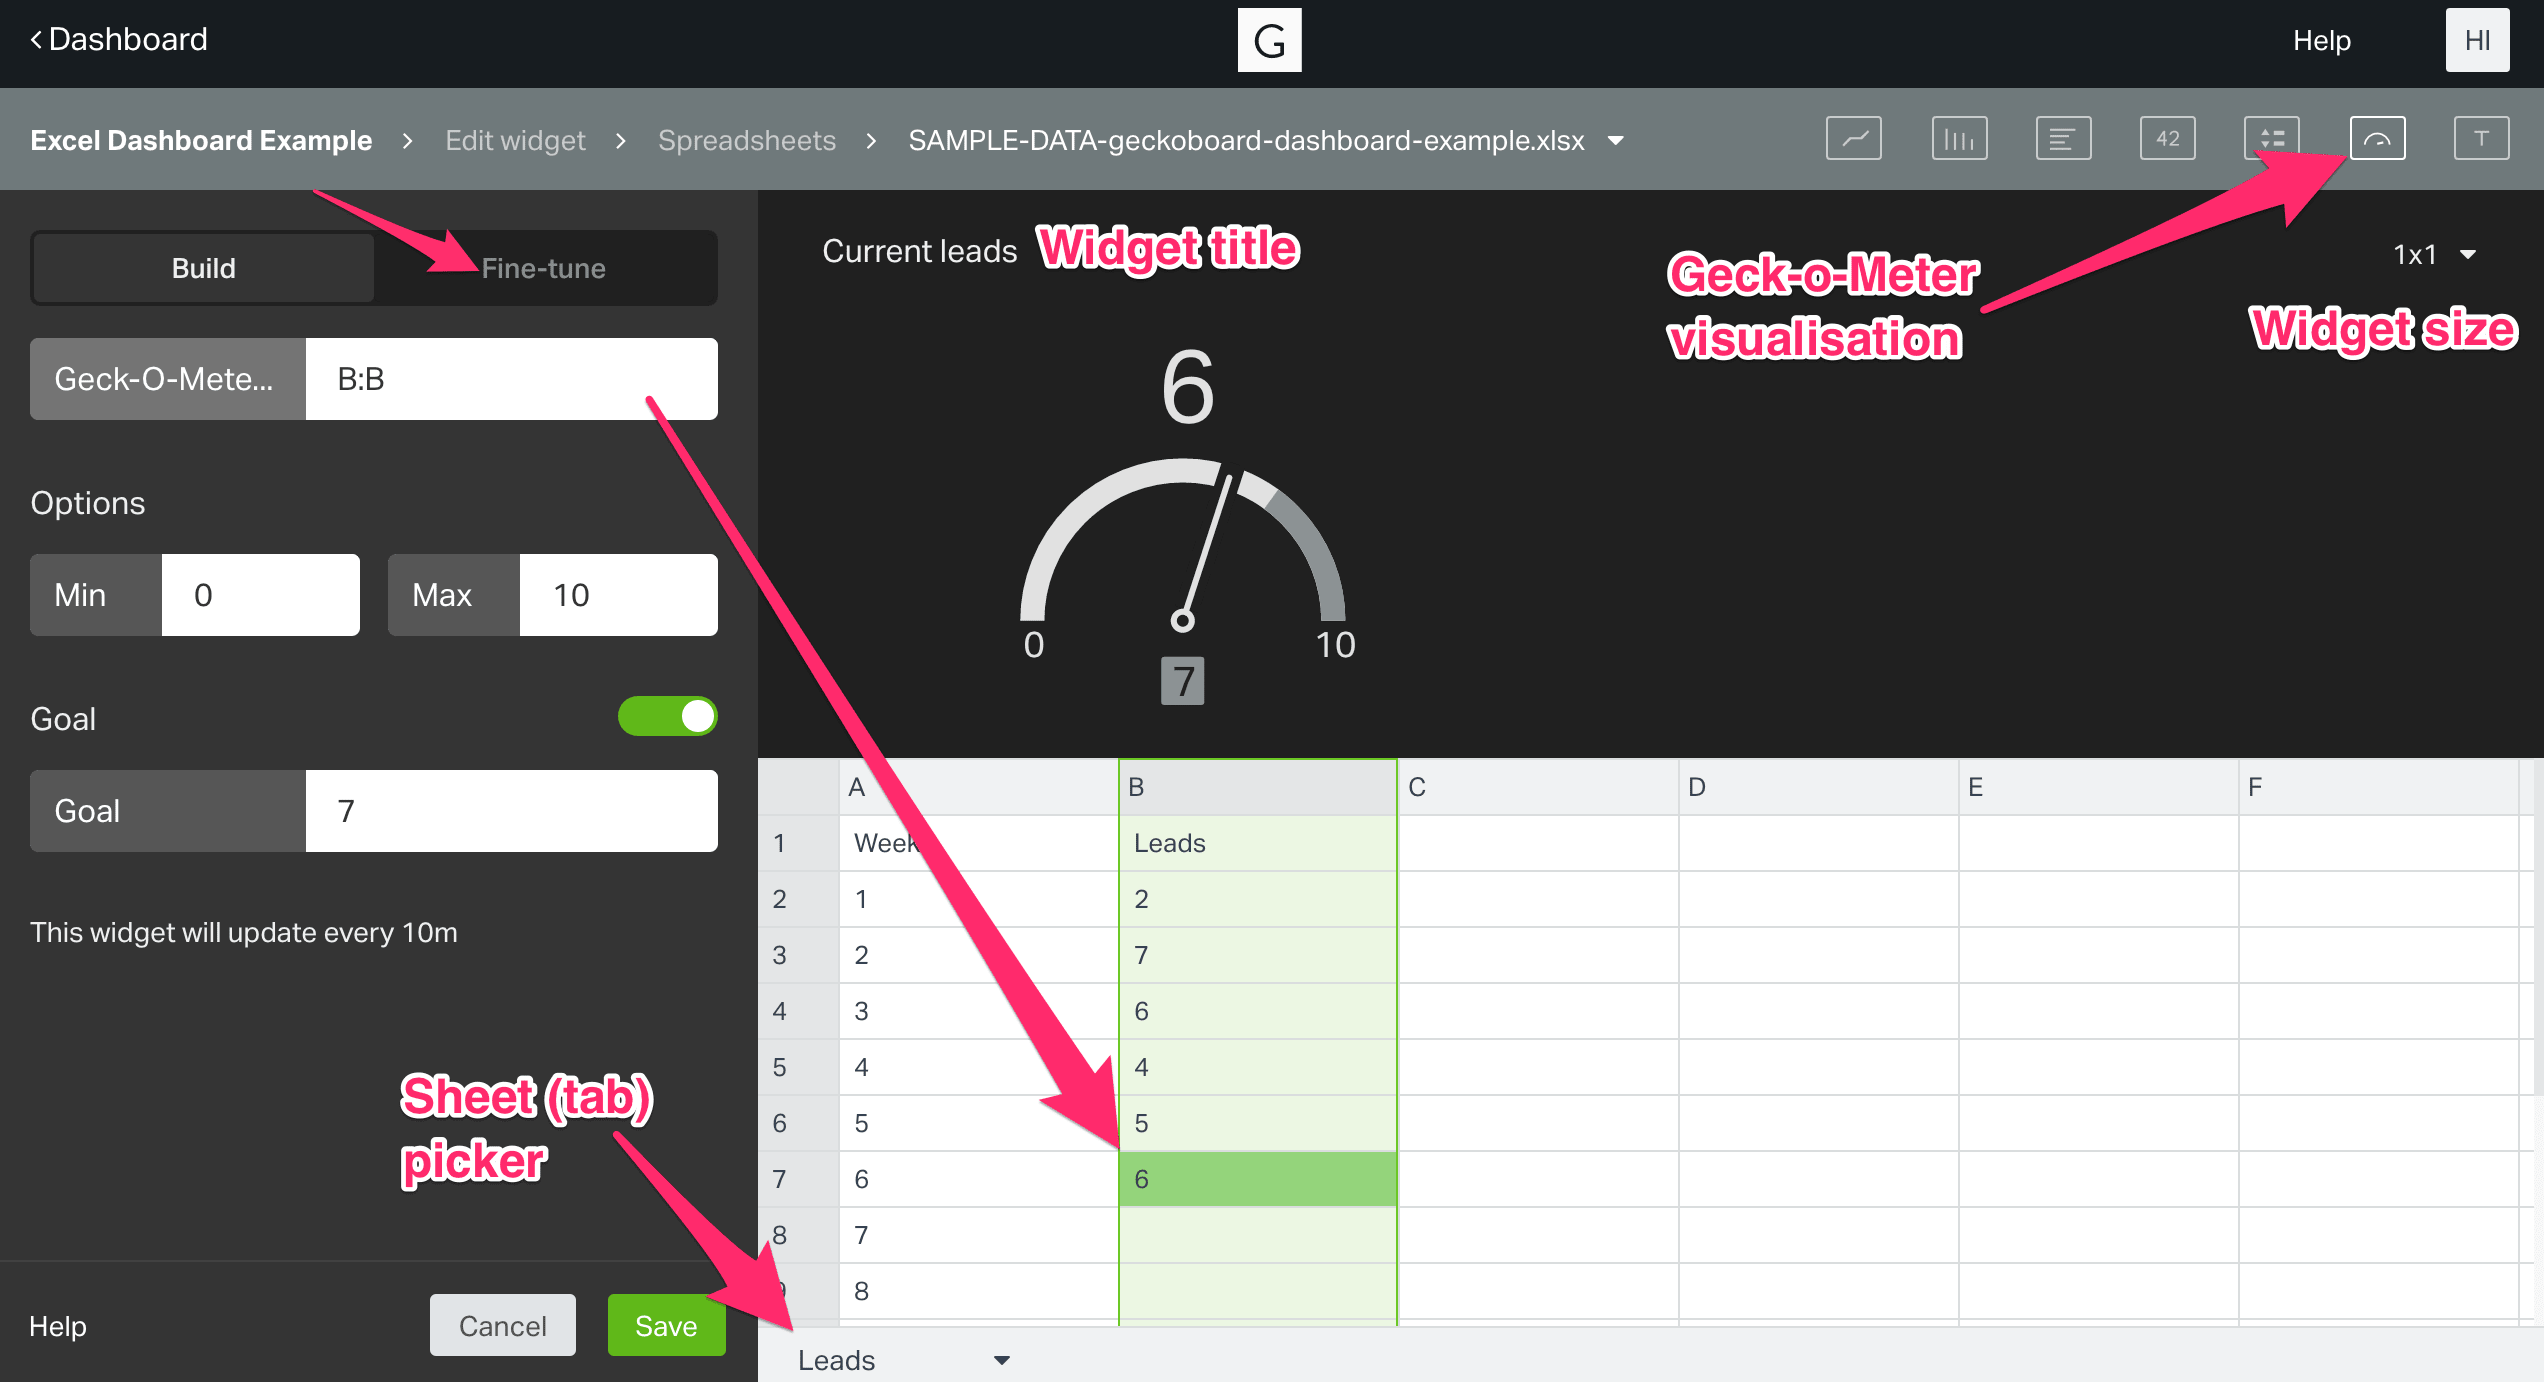 Steps to build the Live Excel (or Google Sheets) Dashboard